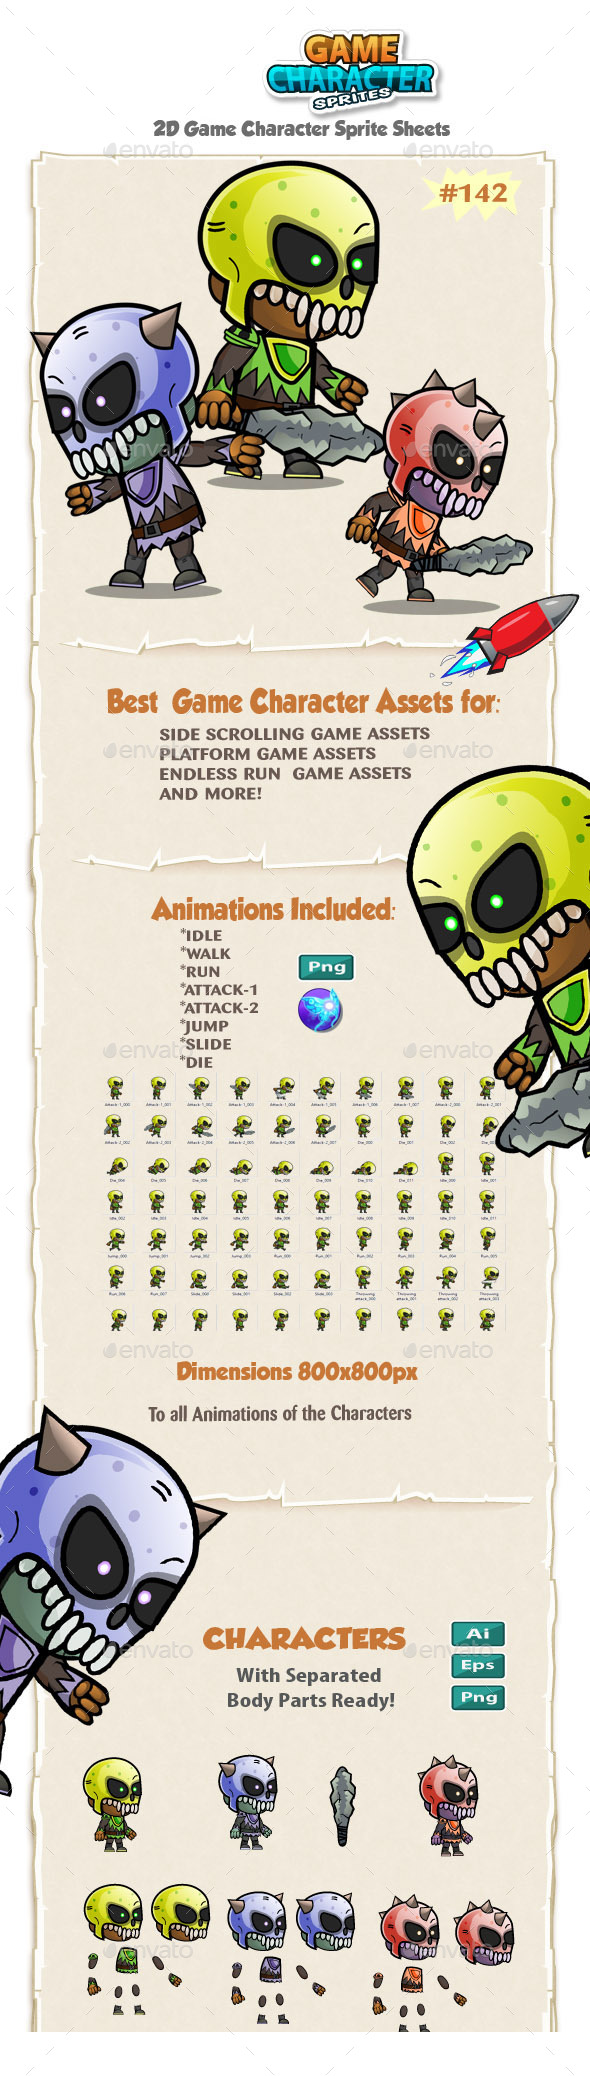 Game Enemies Character Sprites 142 - Sprites Game Assets